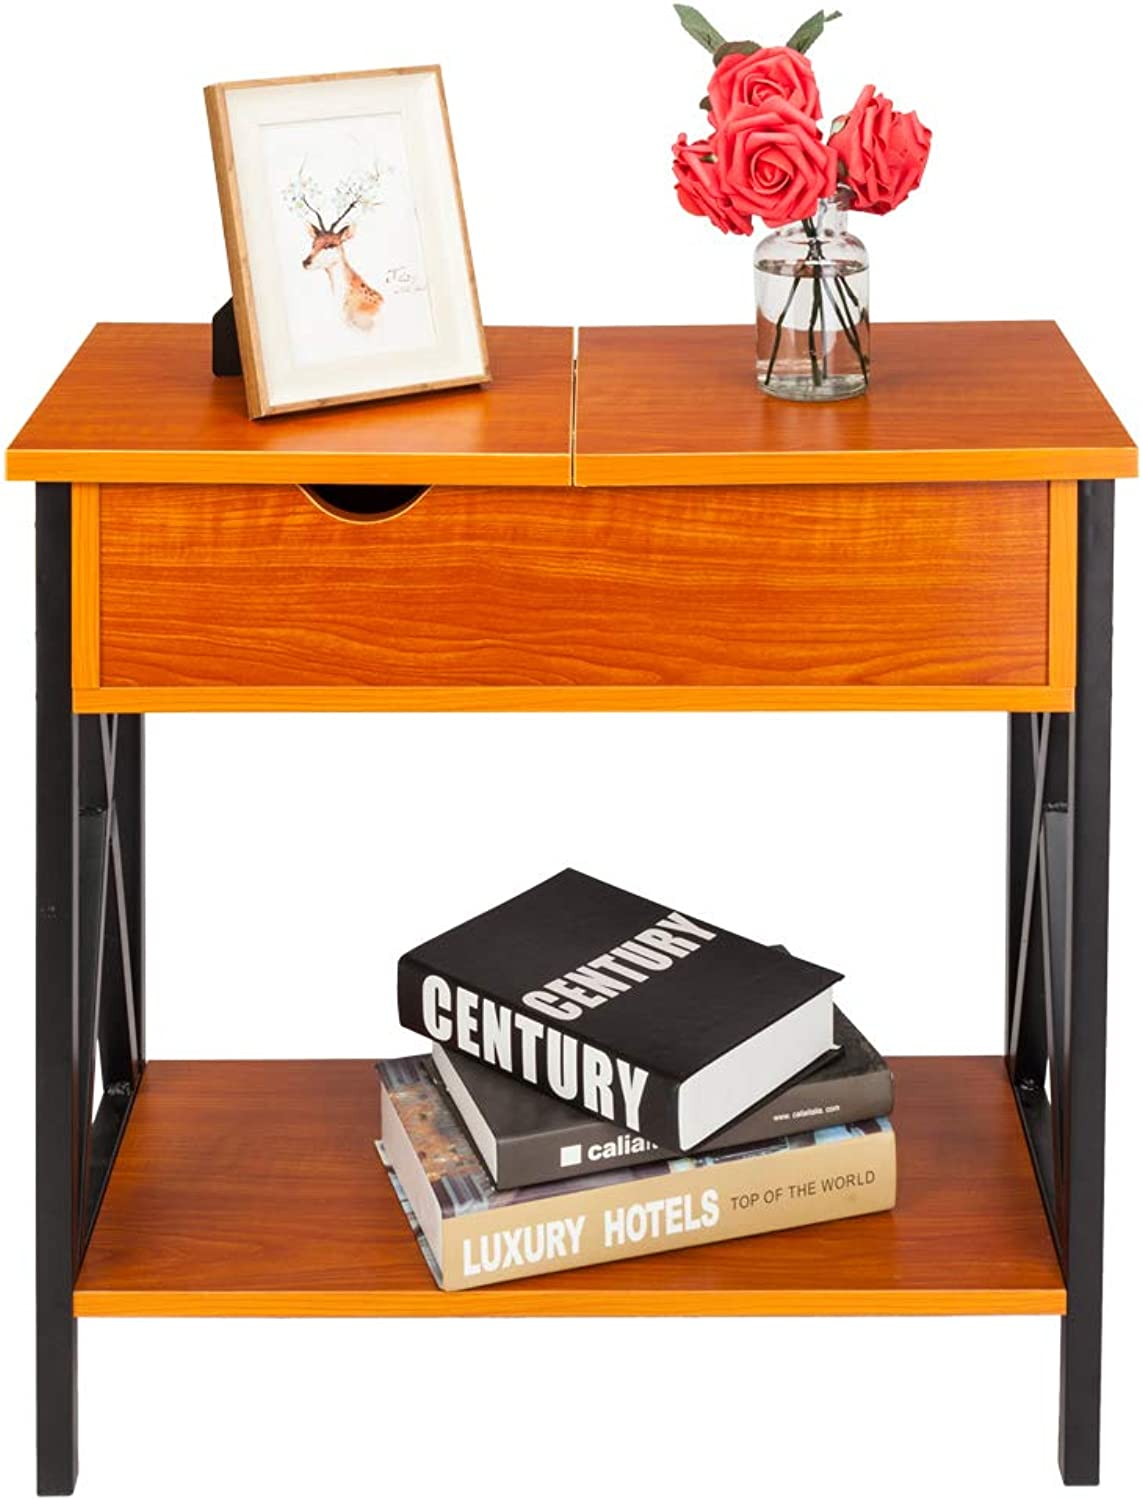 HIKTY Flip Top Open End Table Flip Top and Drawer Flip Collection Top Table Chair Side Table Wooden End Shelf for Bedroom Home (Cherry)